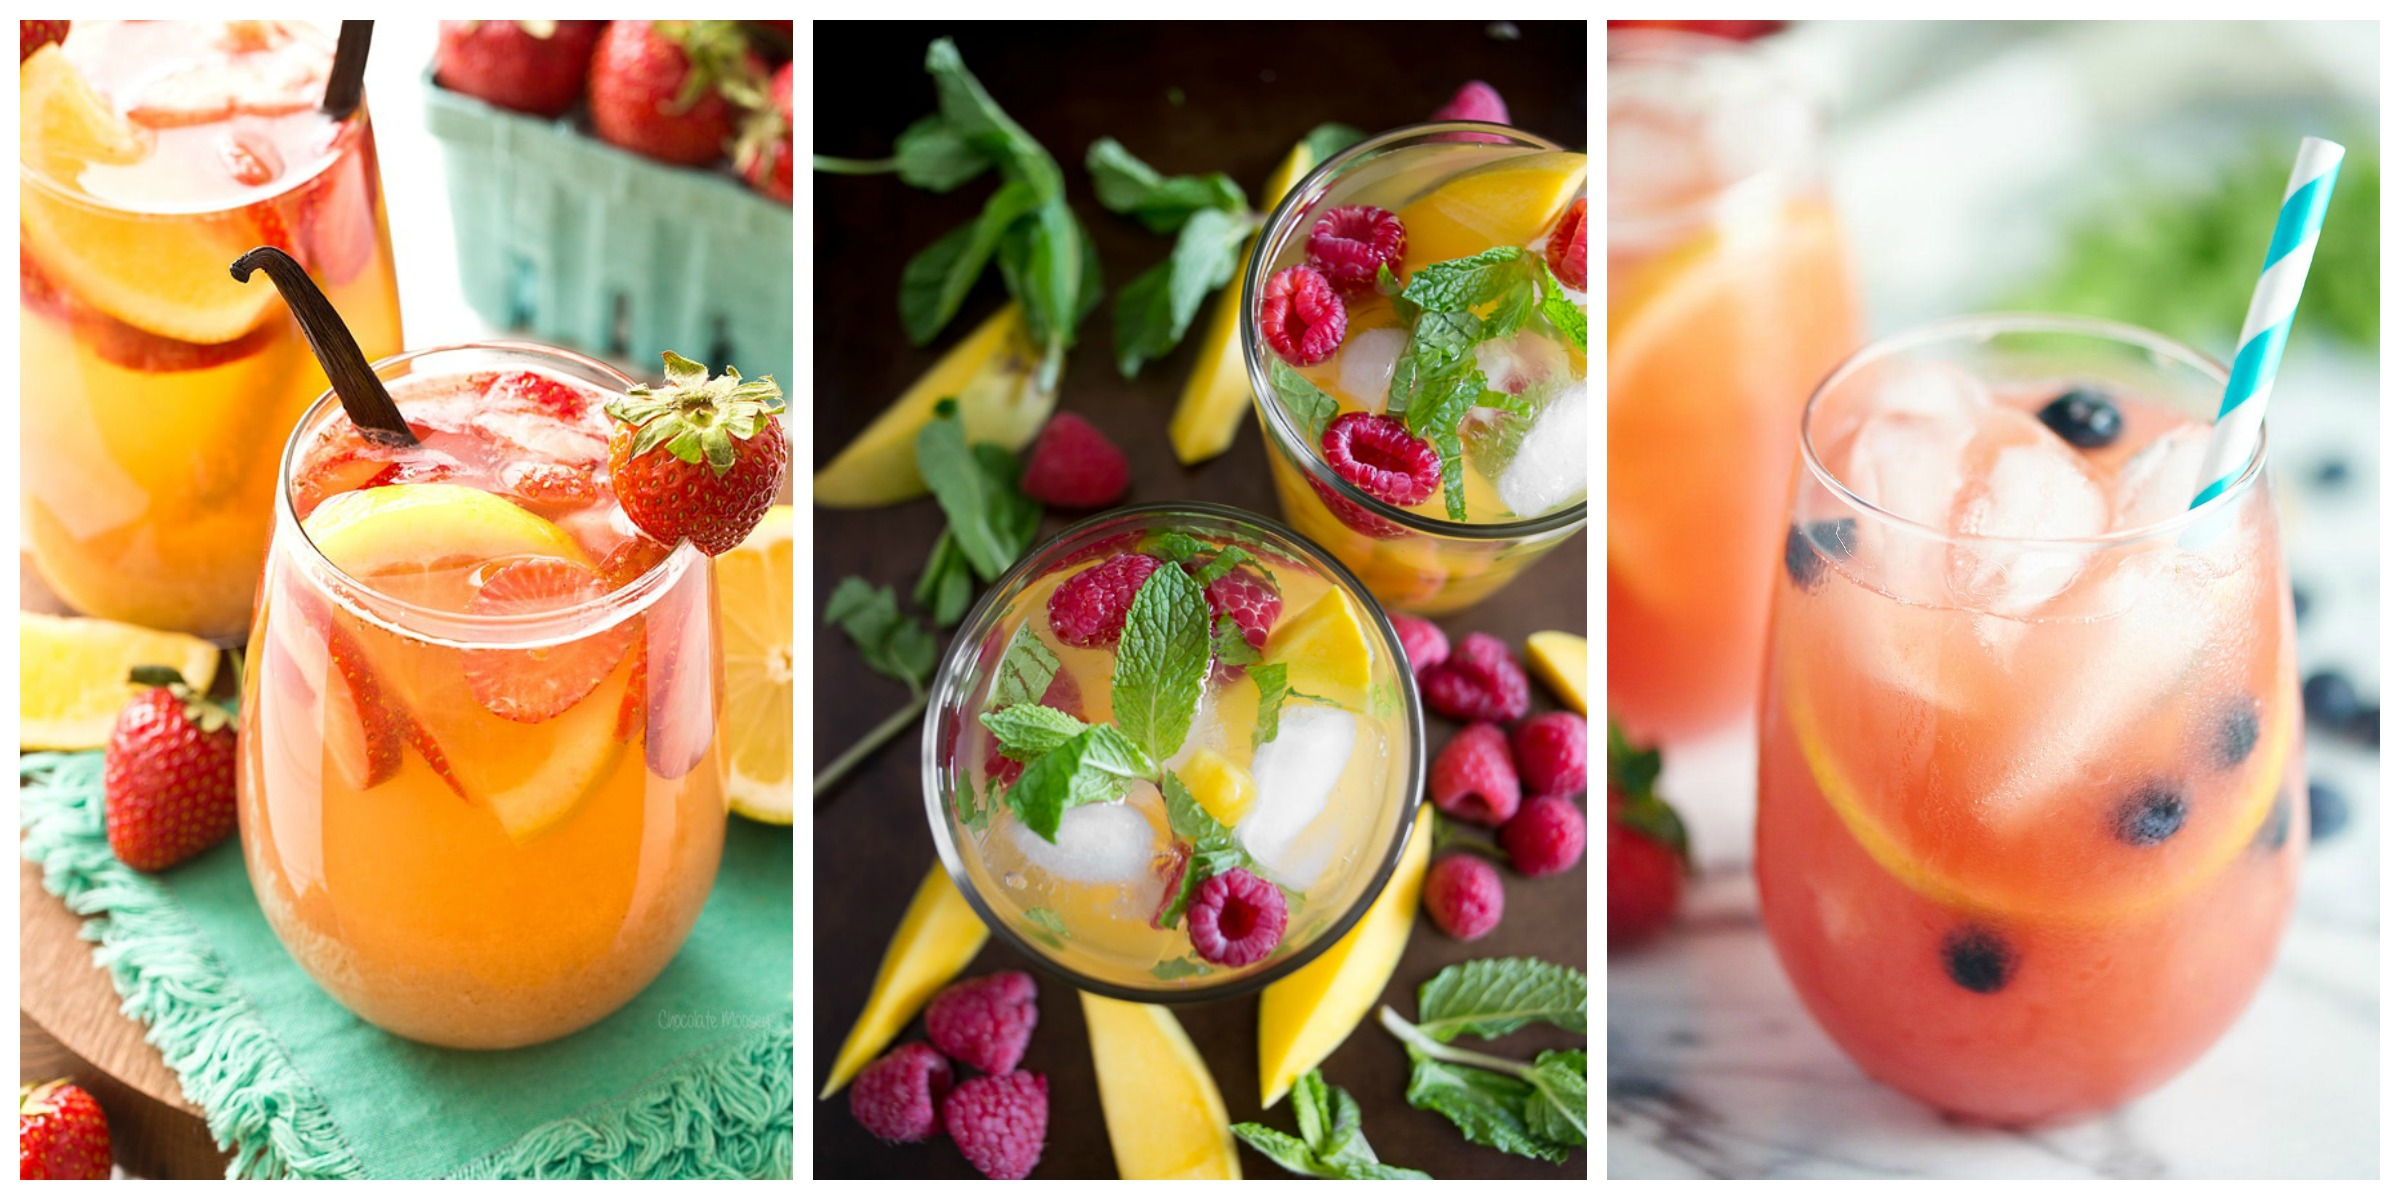 The Best Sangria Recipes from cravingsofalunatic.com- Celebrate summer in epic style with The Best Sangria Recipes! Sangria is so easy to make and super versatile. Whip up a batch today!